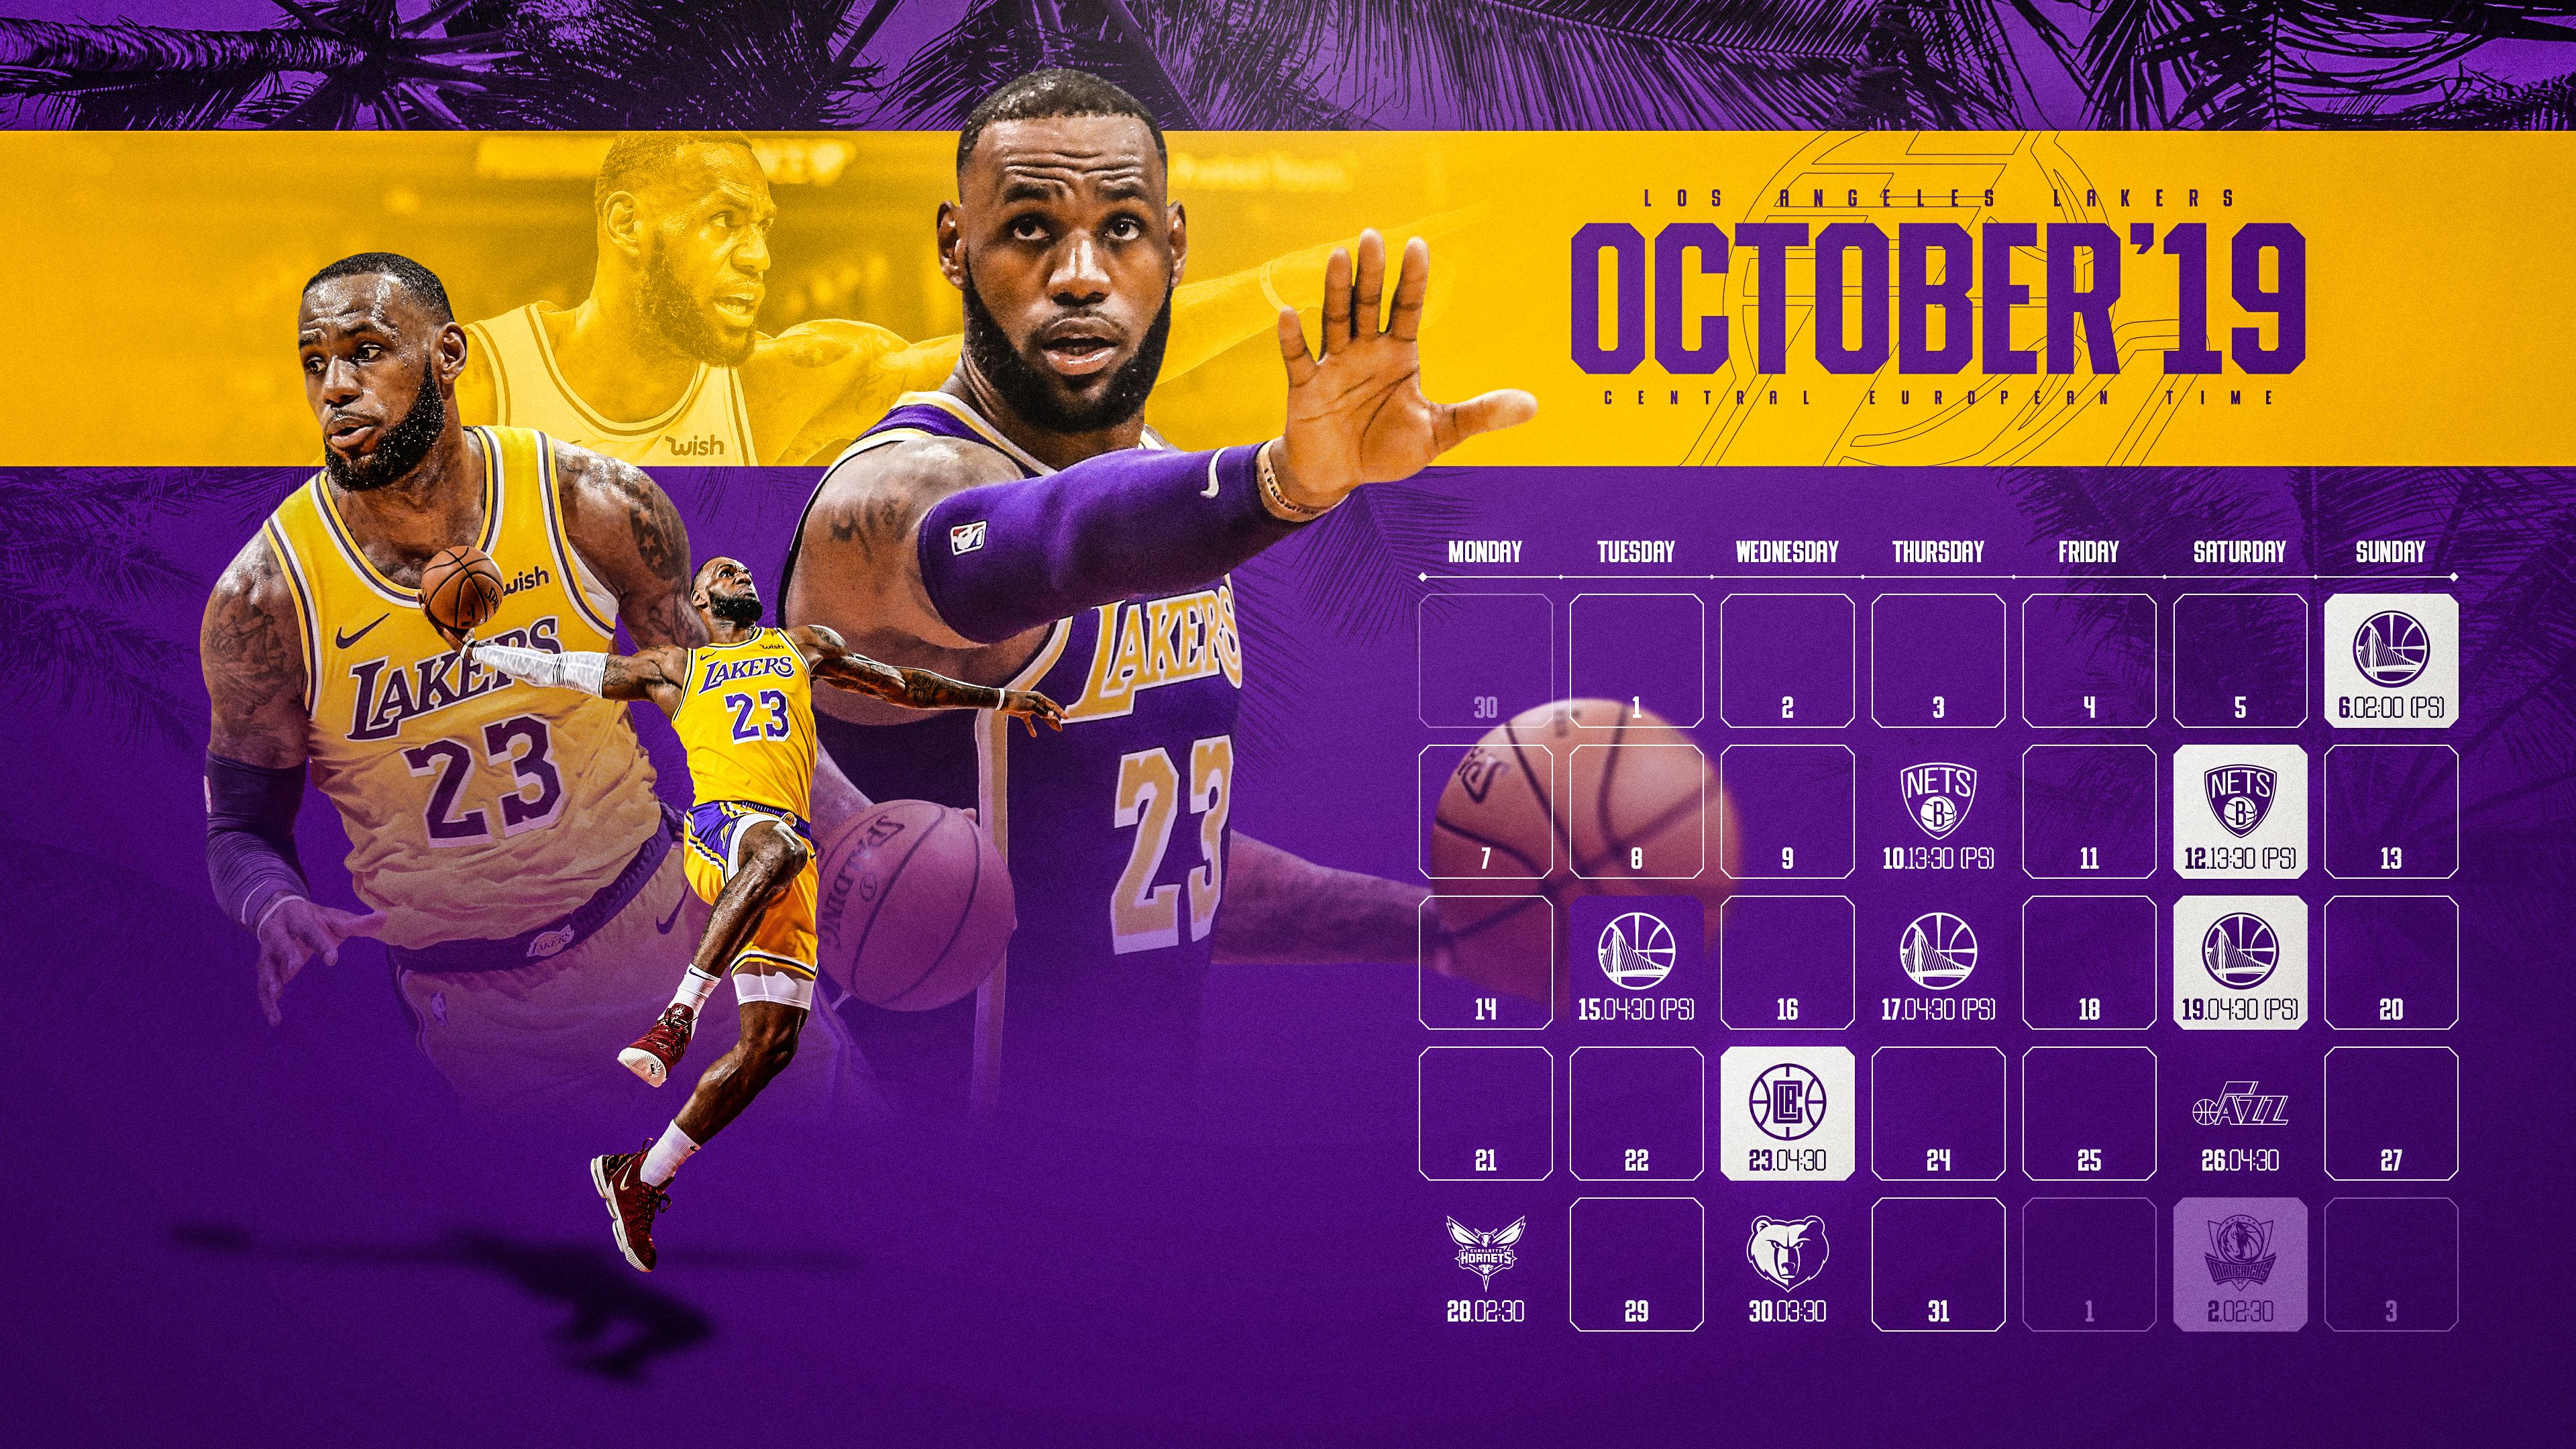 Schedule Wallpaper For The Los Angeles Lakers Regular Season 2019 20 Game Times Are Cet Made By Gergo Tobler Aka Tge Los Angeles Lakers Nba League La Lakers